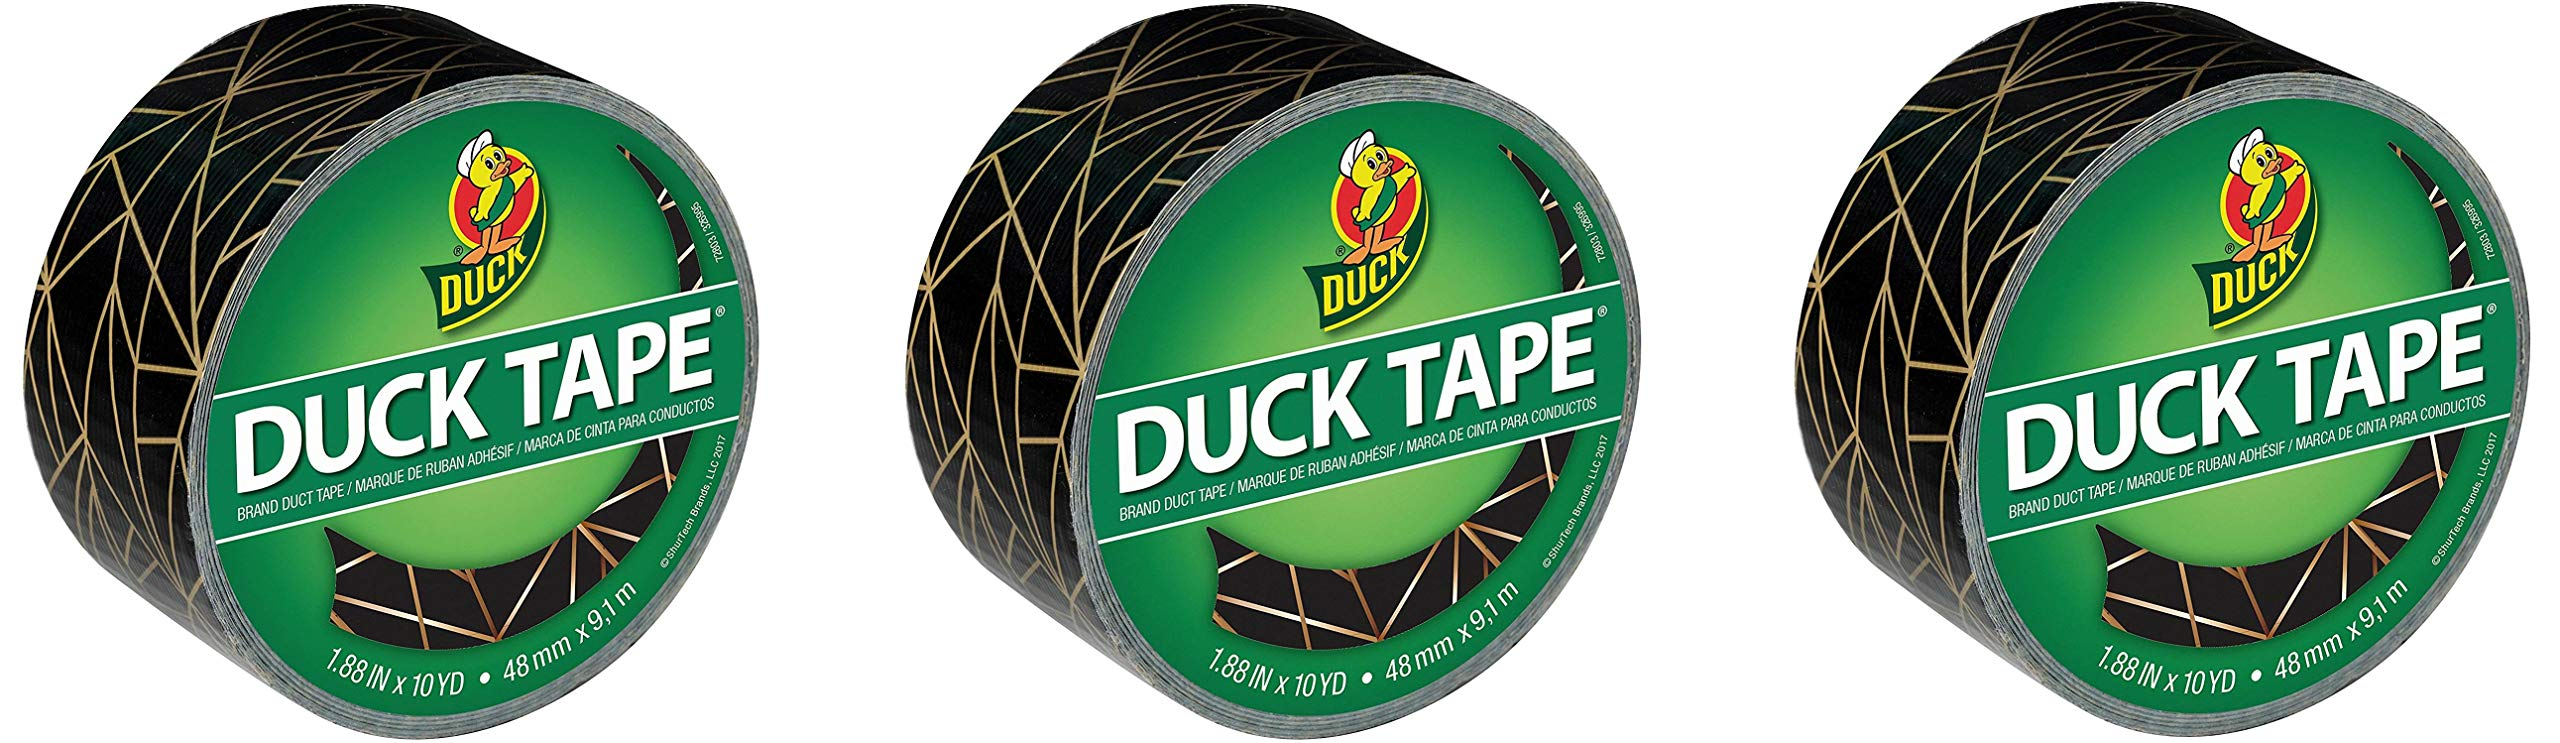 Duck Brand 241794 Printed Duct Tape, 1.88 in. x 10 yds, Gold Geometric (Тhree Pаck)